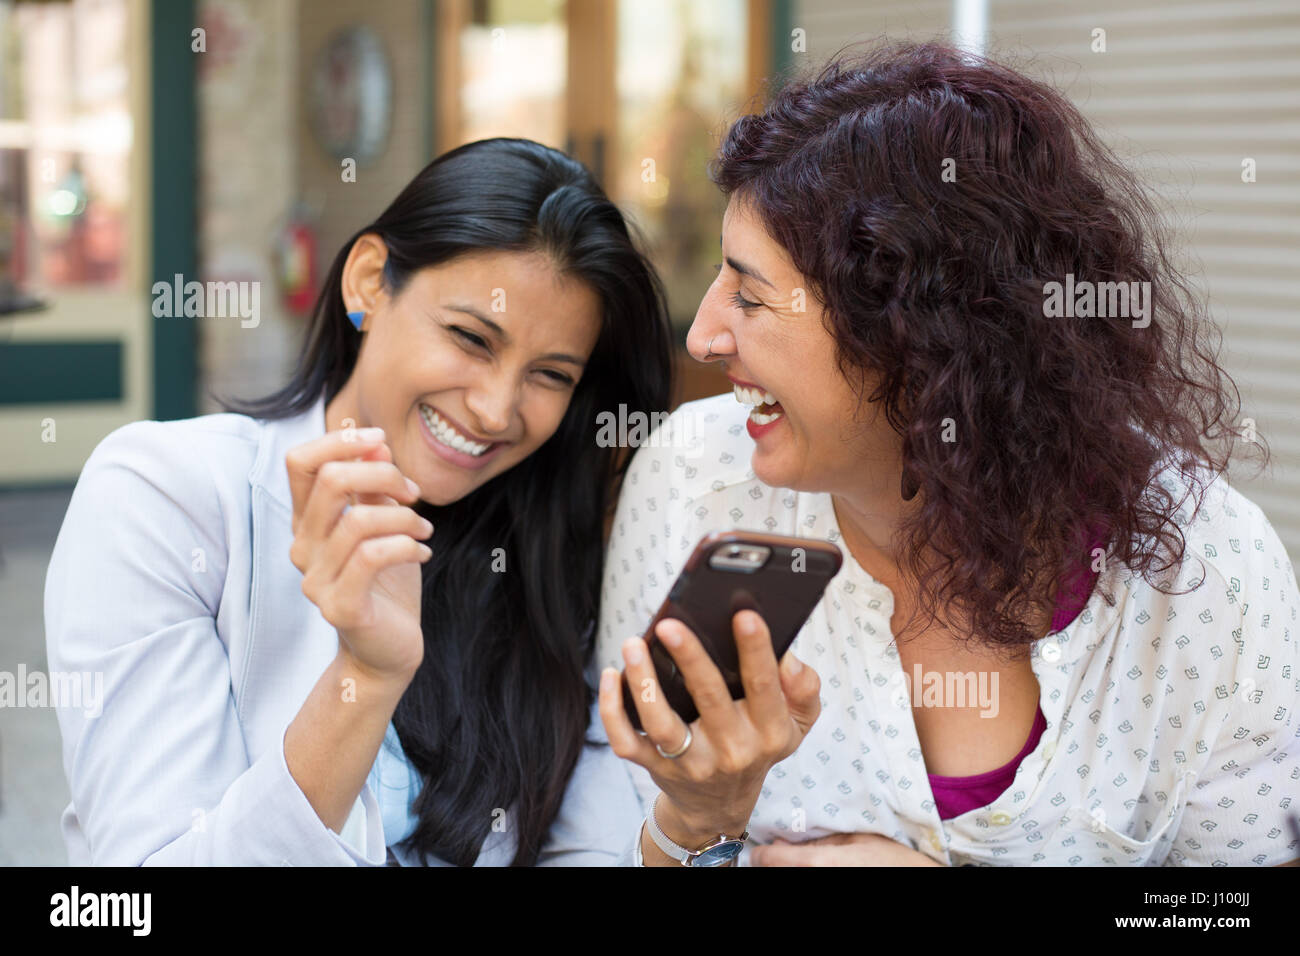 Closeup portrait two surprised girls looking at cell phone, discussing latest gossip news, sharing intimate moments, - Stock Image